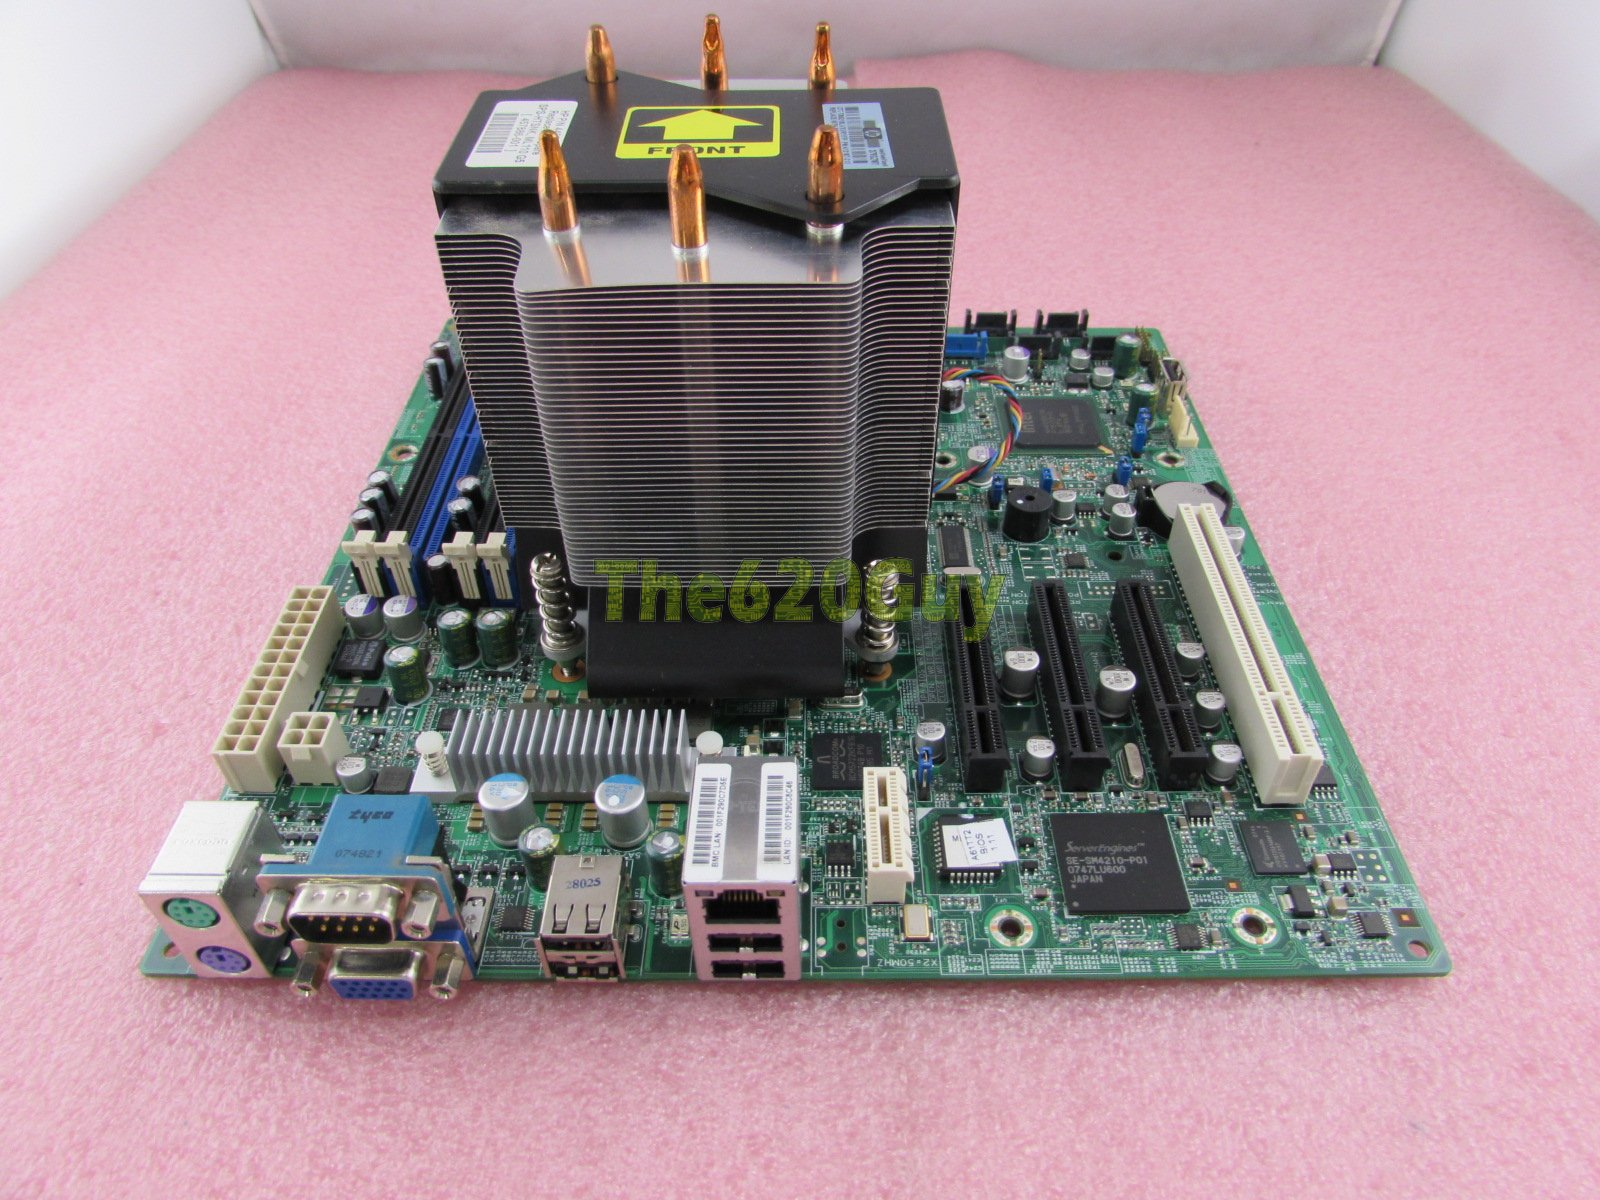 HP ML110 G5 Motherboard 457883-001 445072-001 A61TT2 + Core 2 Duo 2GHz CPU  + HSF - The620Guy com